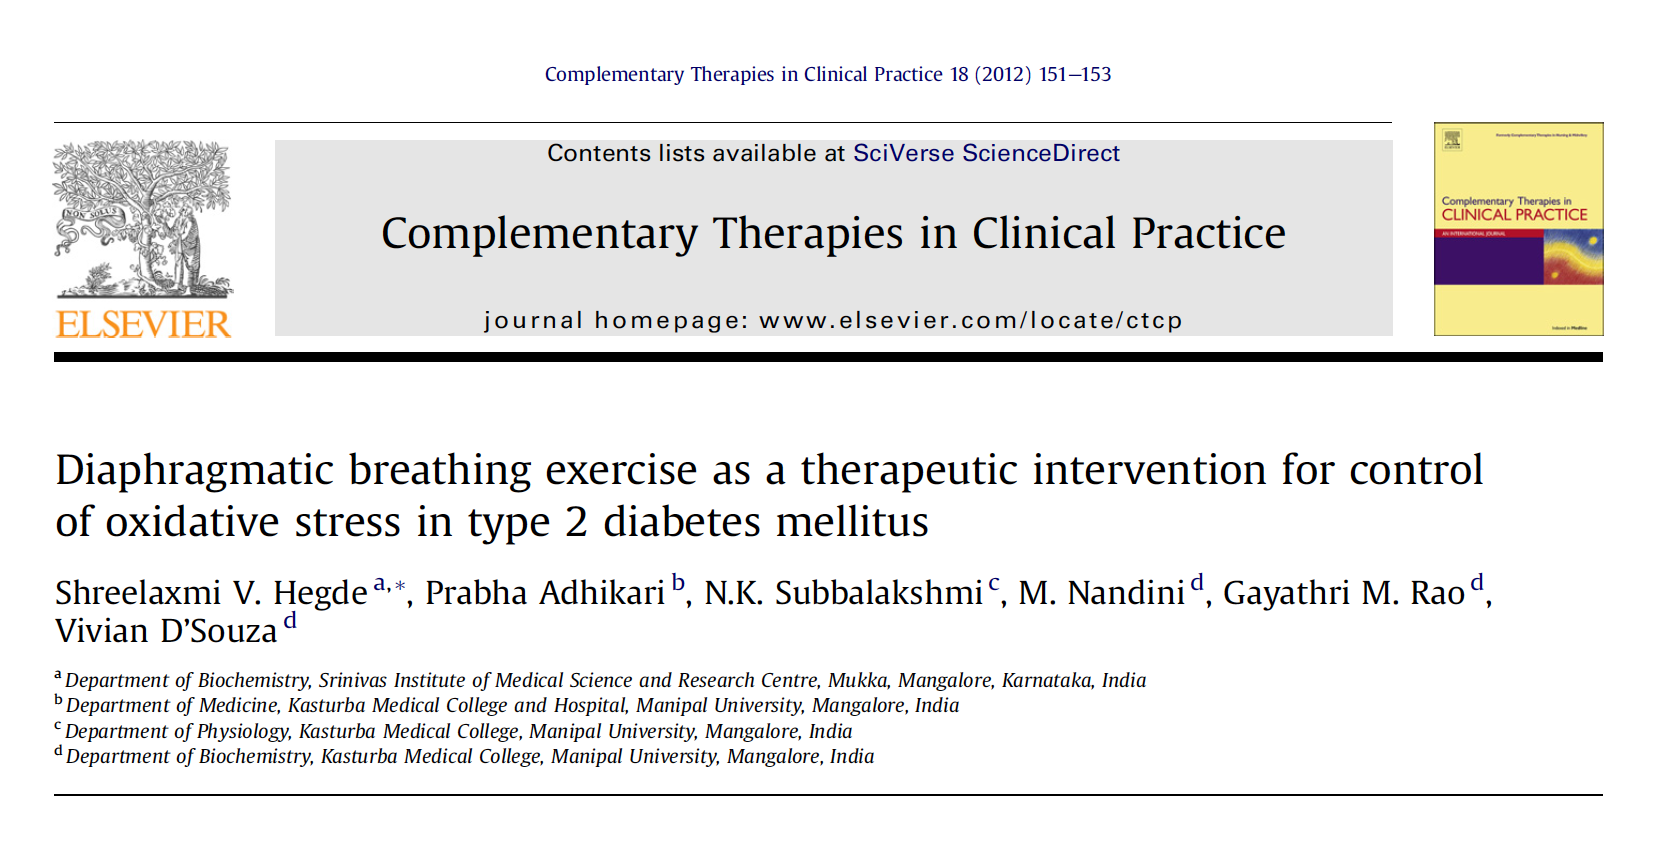 - Diaphragmatic breathing exercise as a therapeutic intervention for control of oxidative stress in type 2 diabetes mellitus